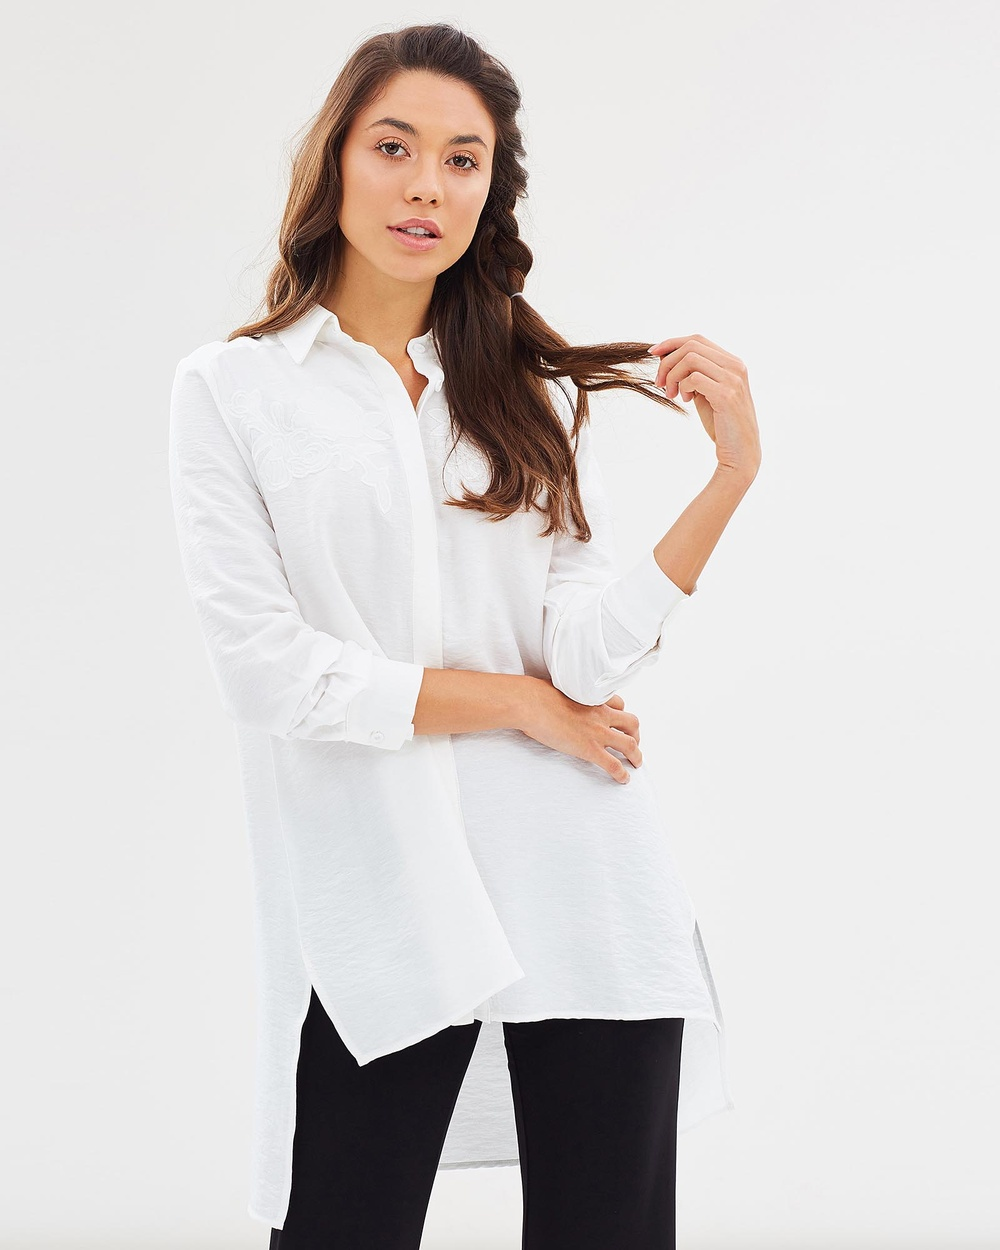 Faye Black Label Fall From Lace Applique Shirt Tops Off White Fall From Lace Applique Shirt